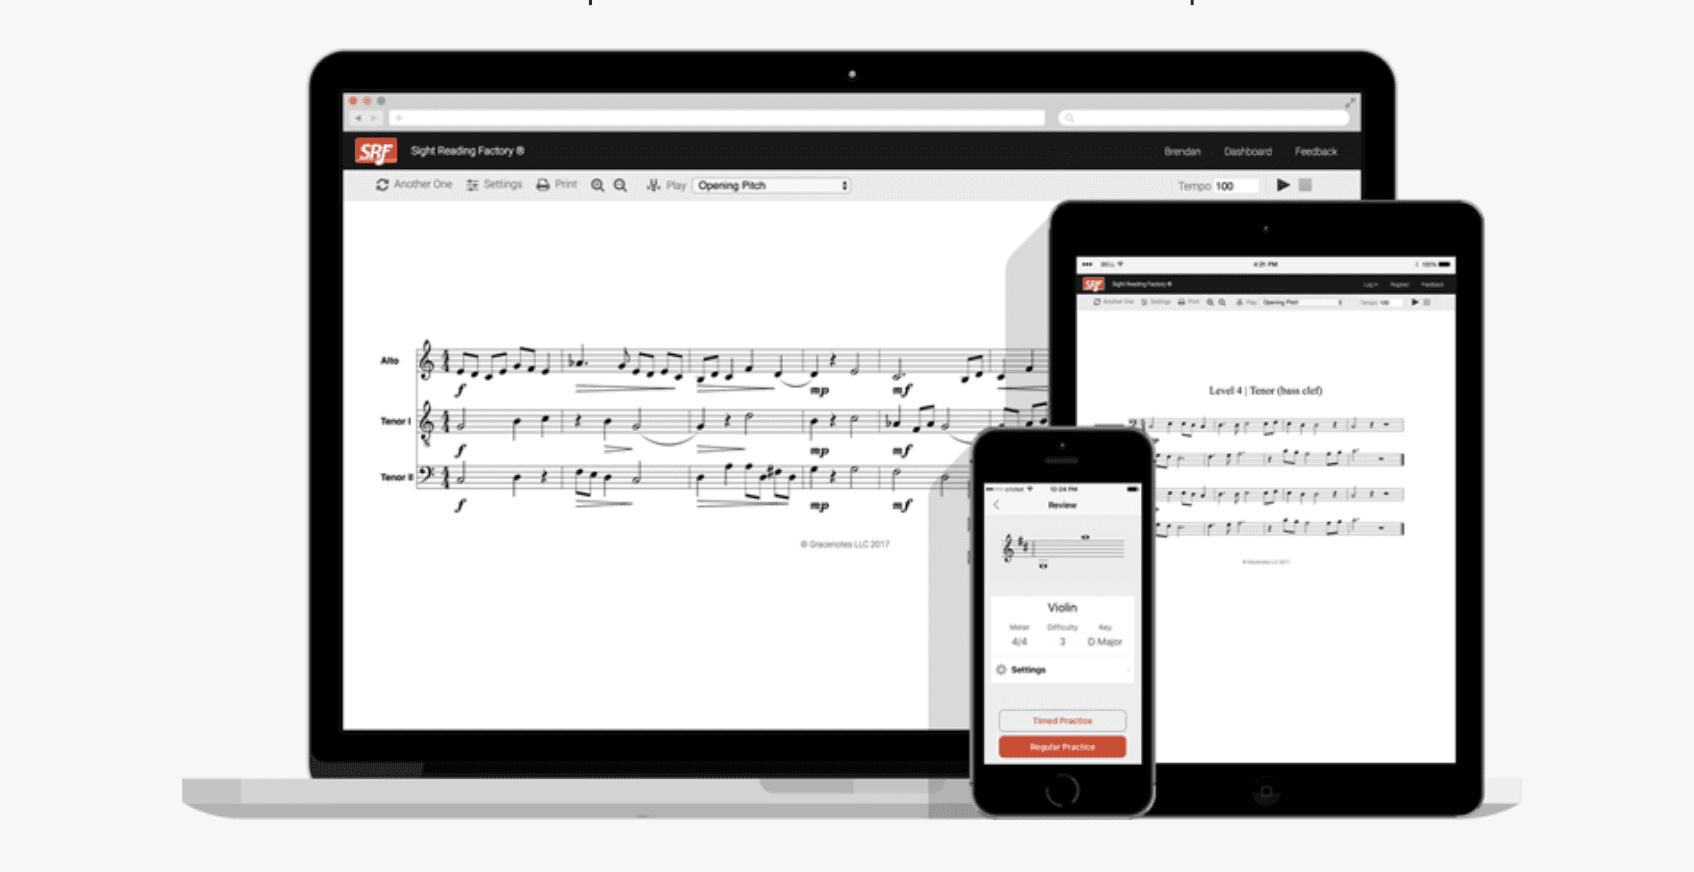 Sight reading practice made easy